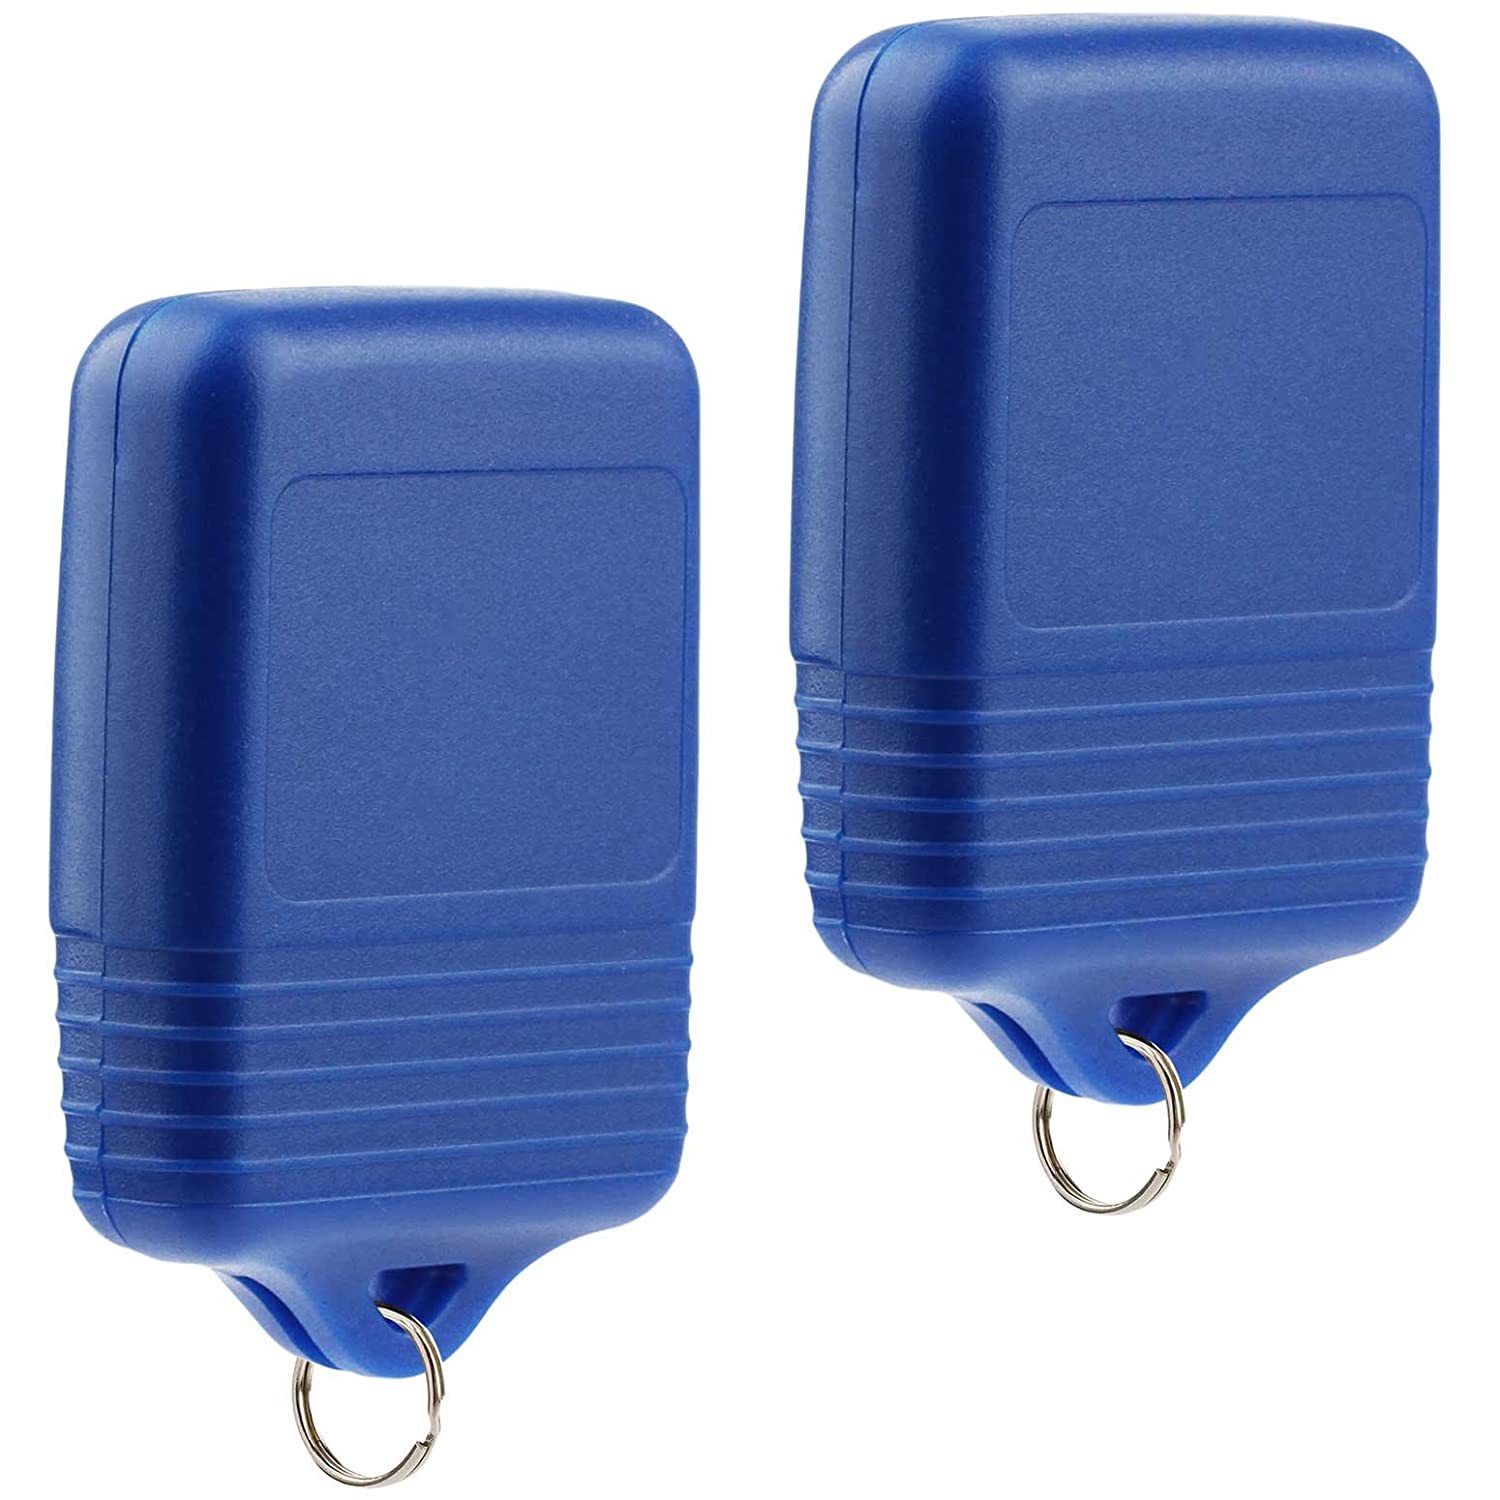 Mazda Mustang Key Fob Keyless Entry Remote fits Ford Set of 2 Mercury Lincoln Blue